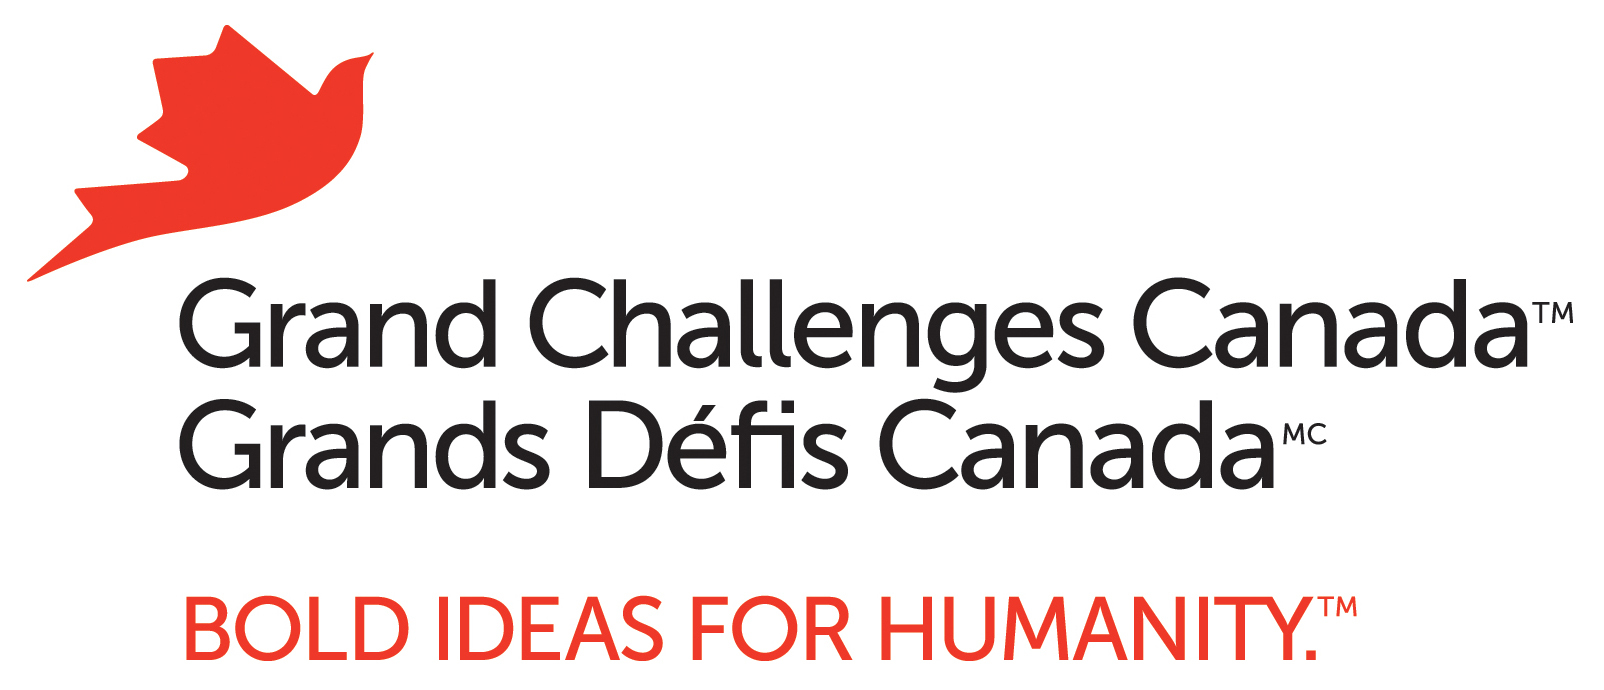 Grand Challenges Canada4